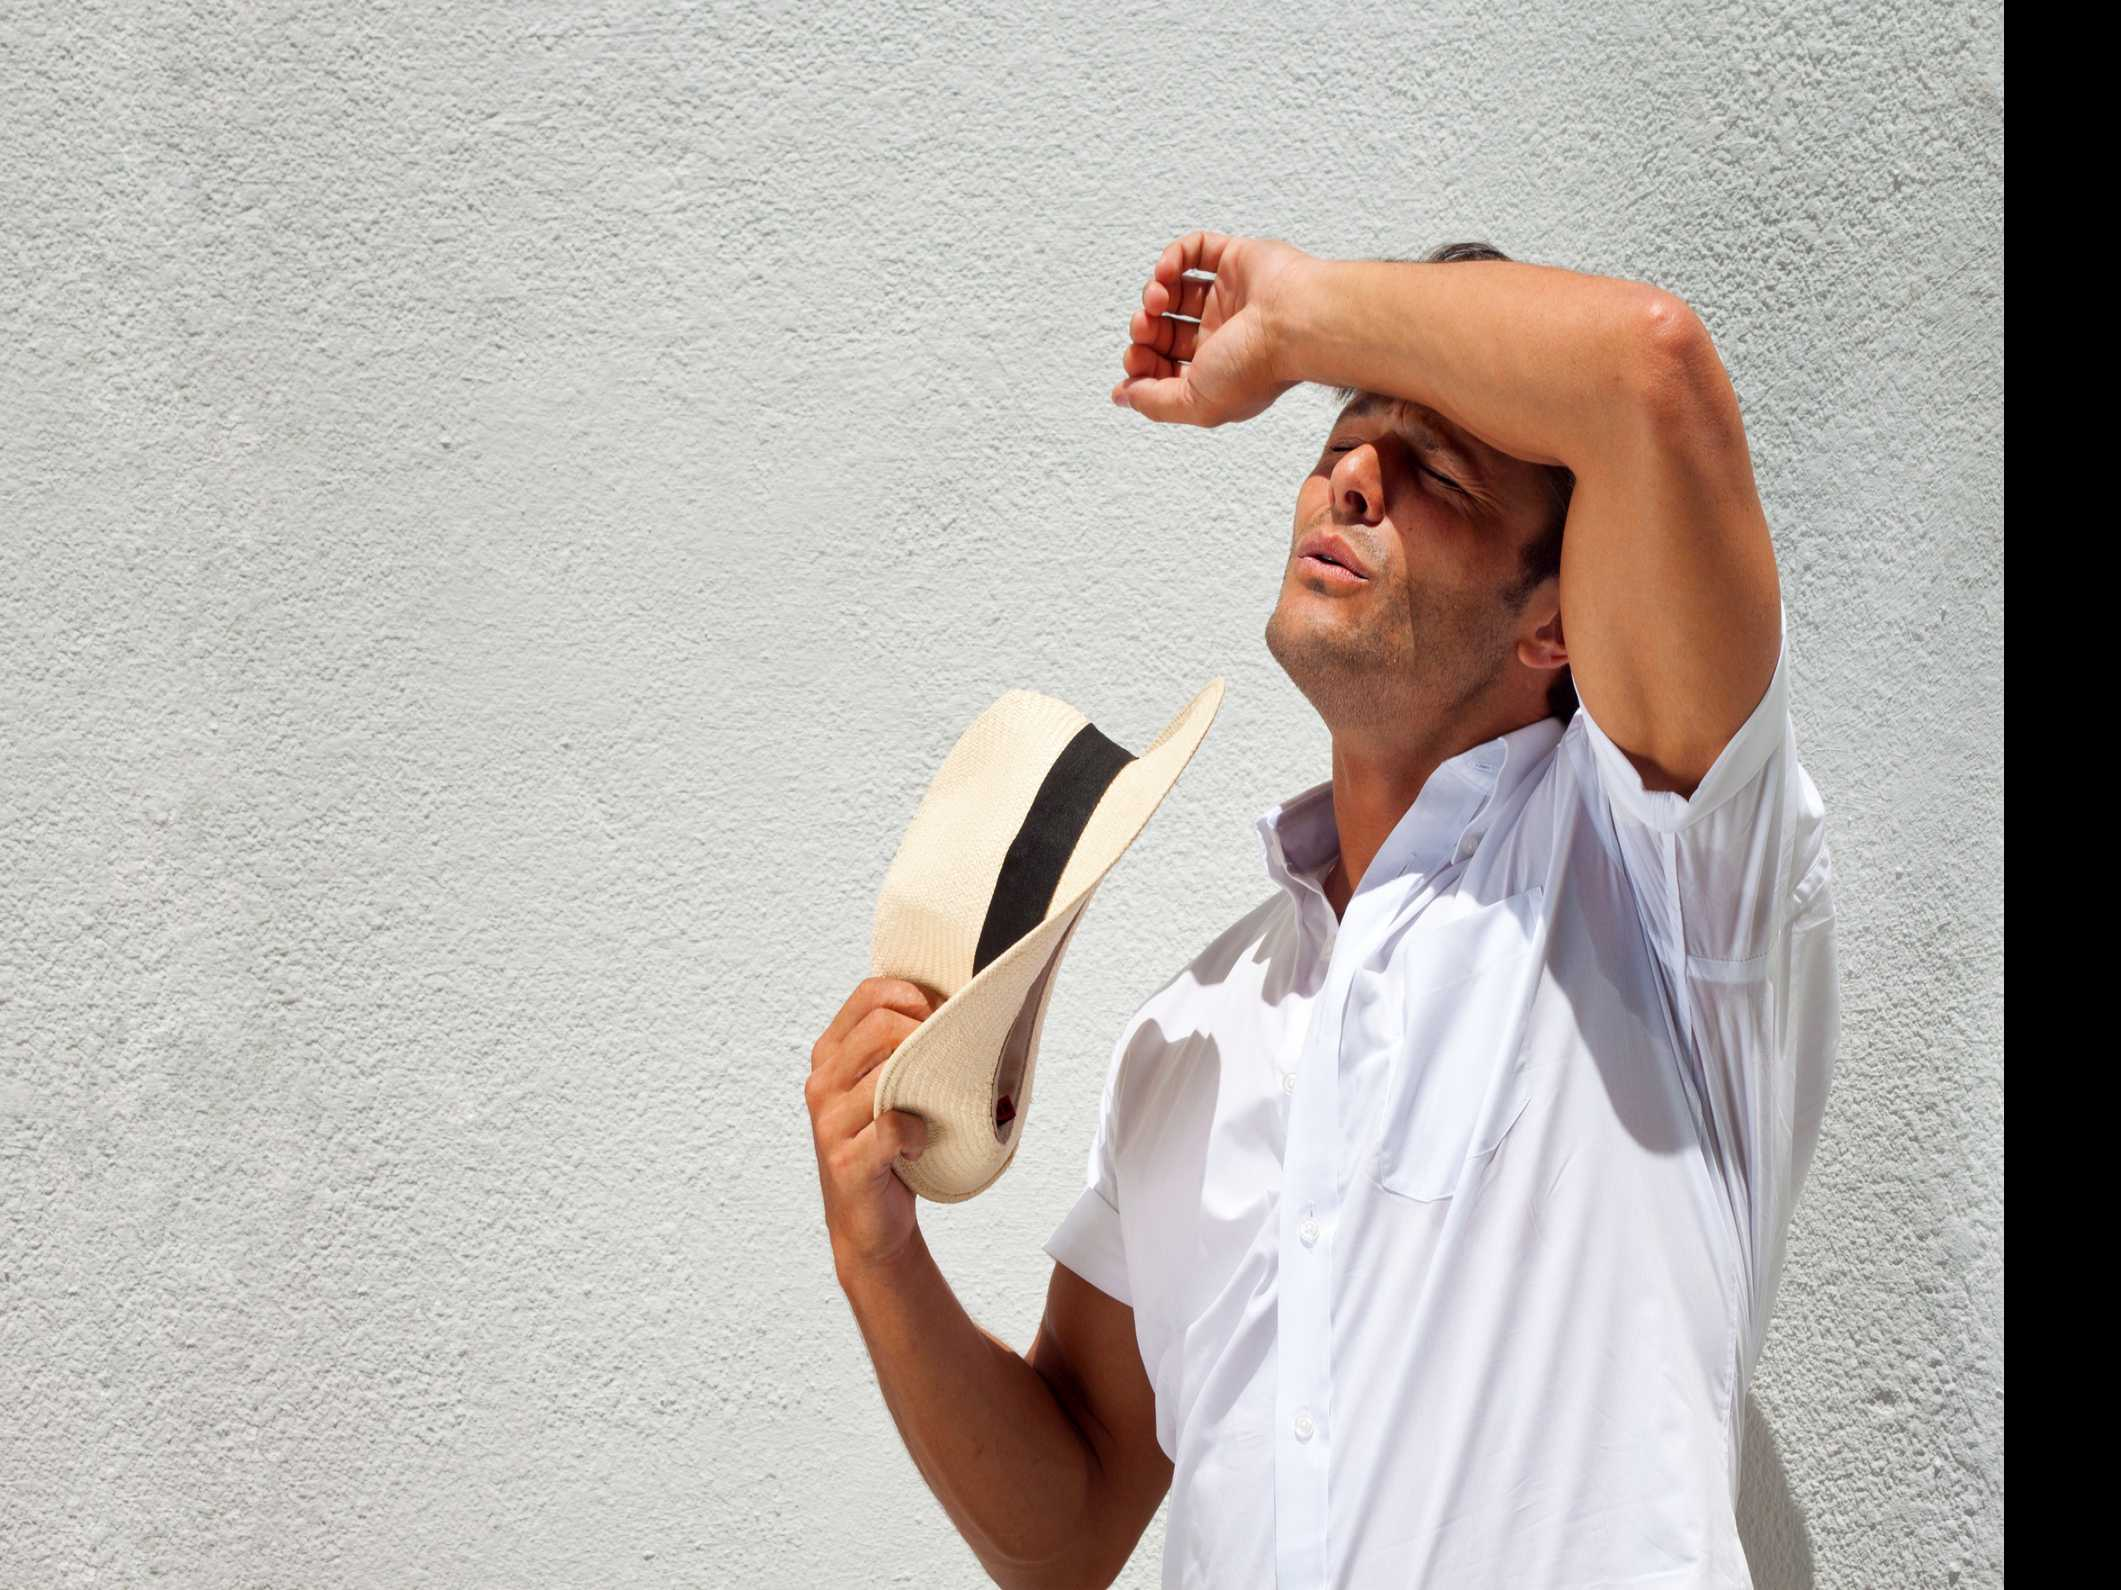 7 Tips to Stop Excessive Sweating This Summer